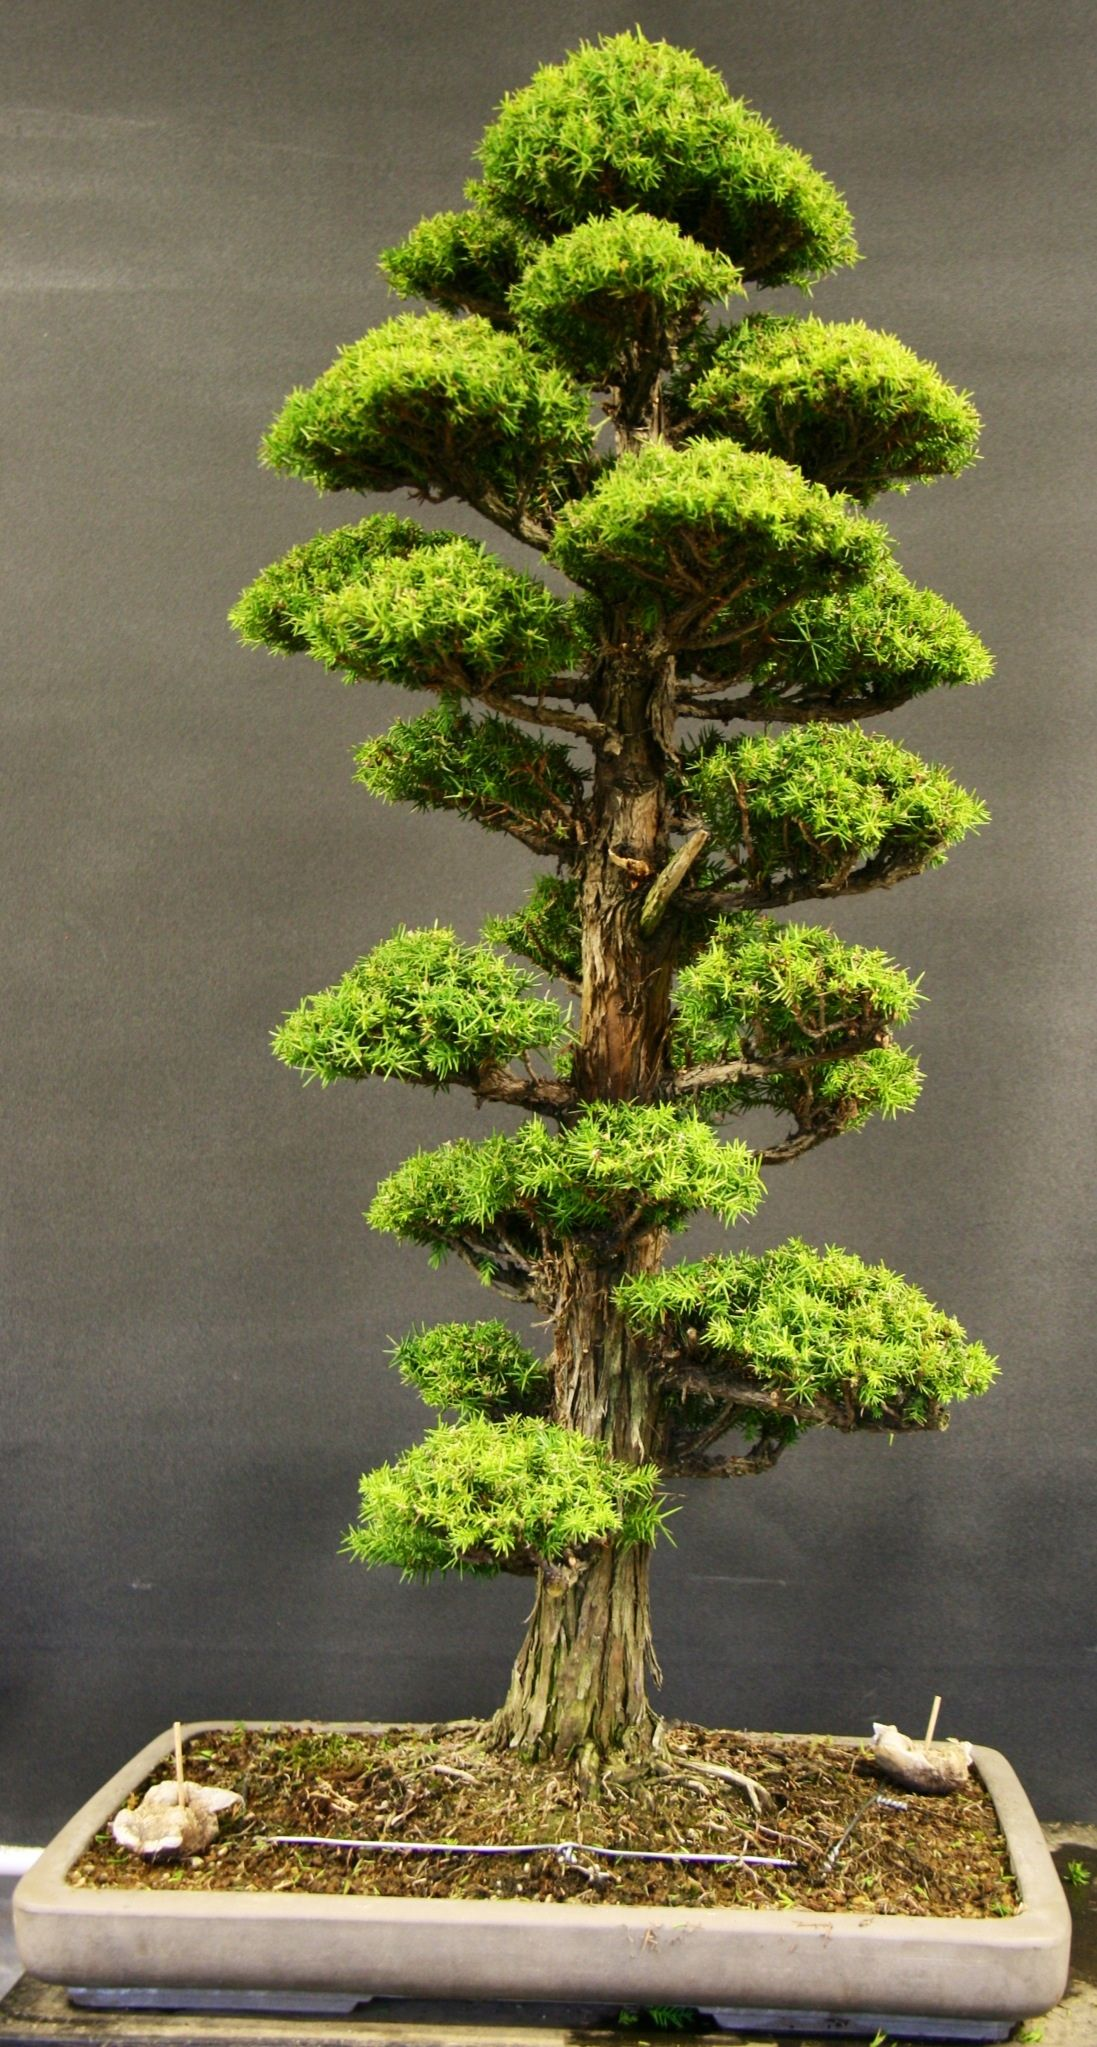 Tamarind Tree Bonsai By Anytimeflower His Bonsai Pinterest